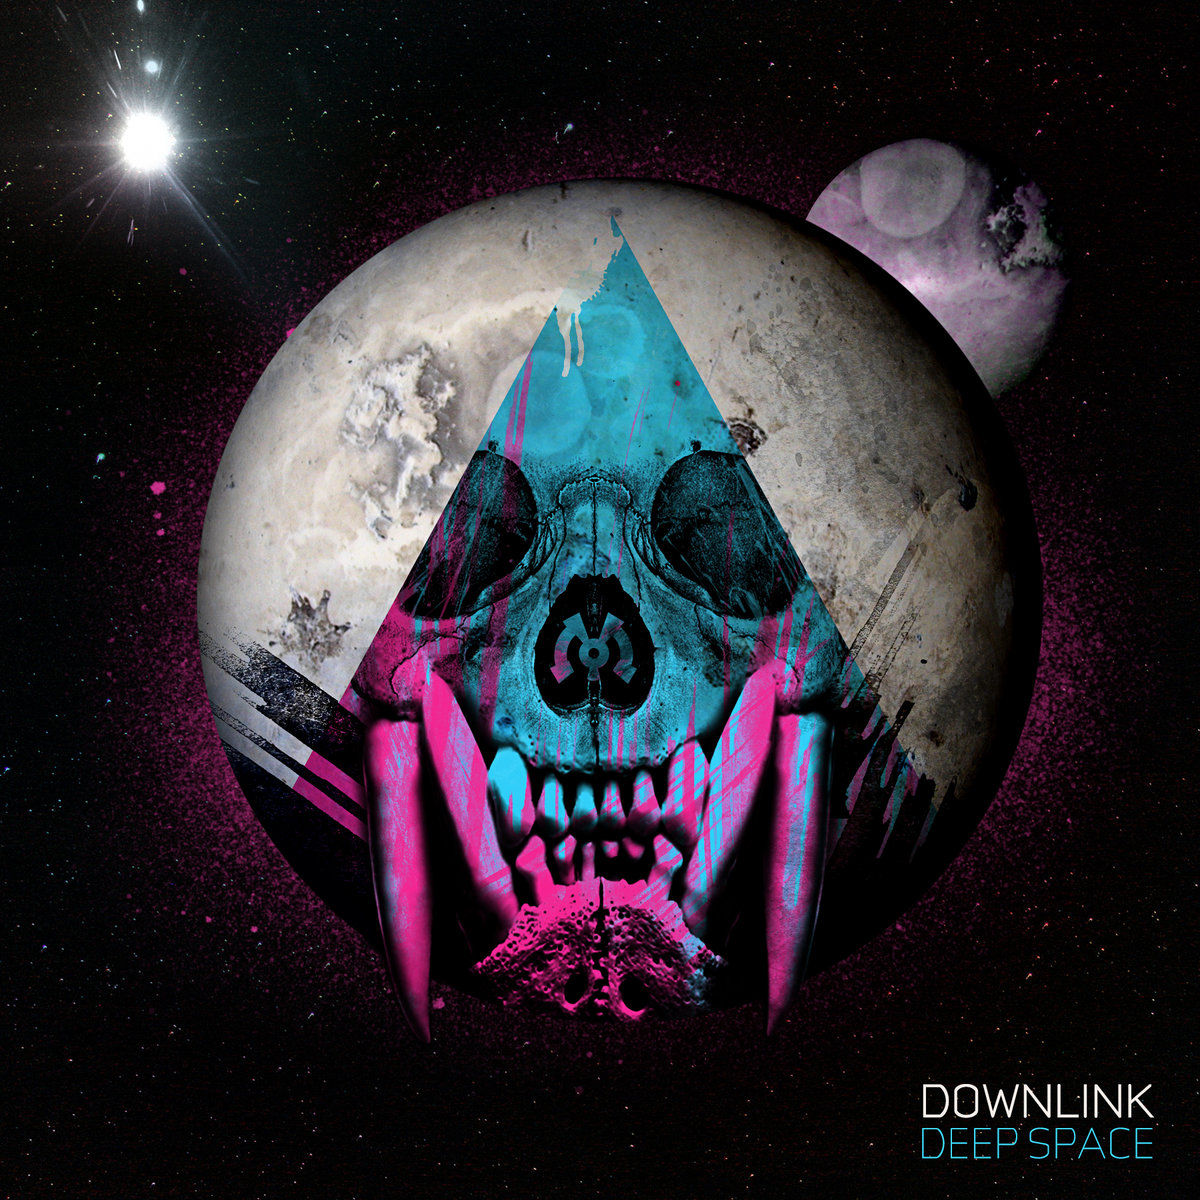 Downlink - Deep Space @ 'Deep Space' album (electronic, dubstep)